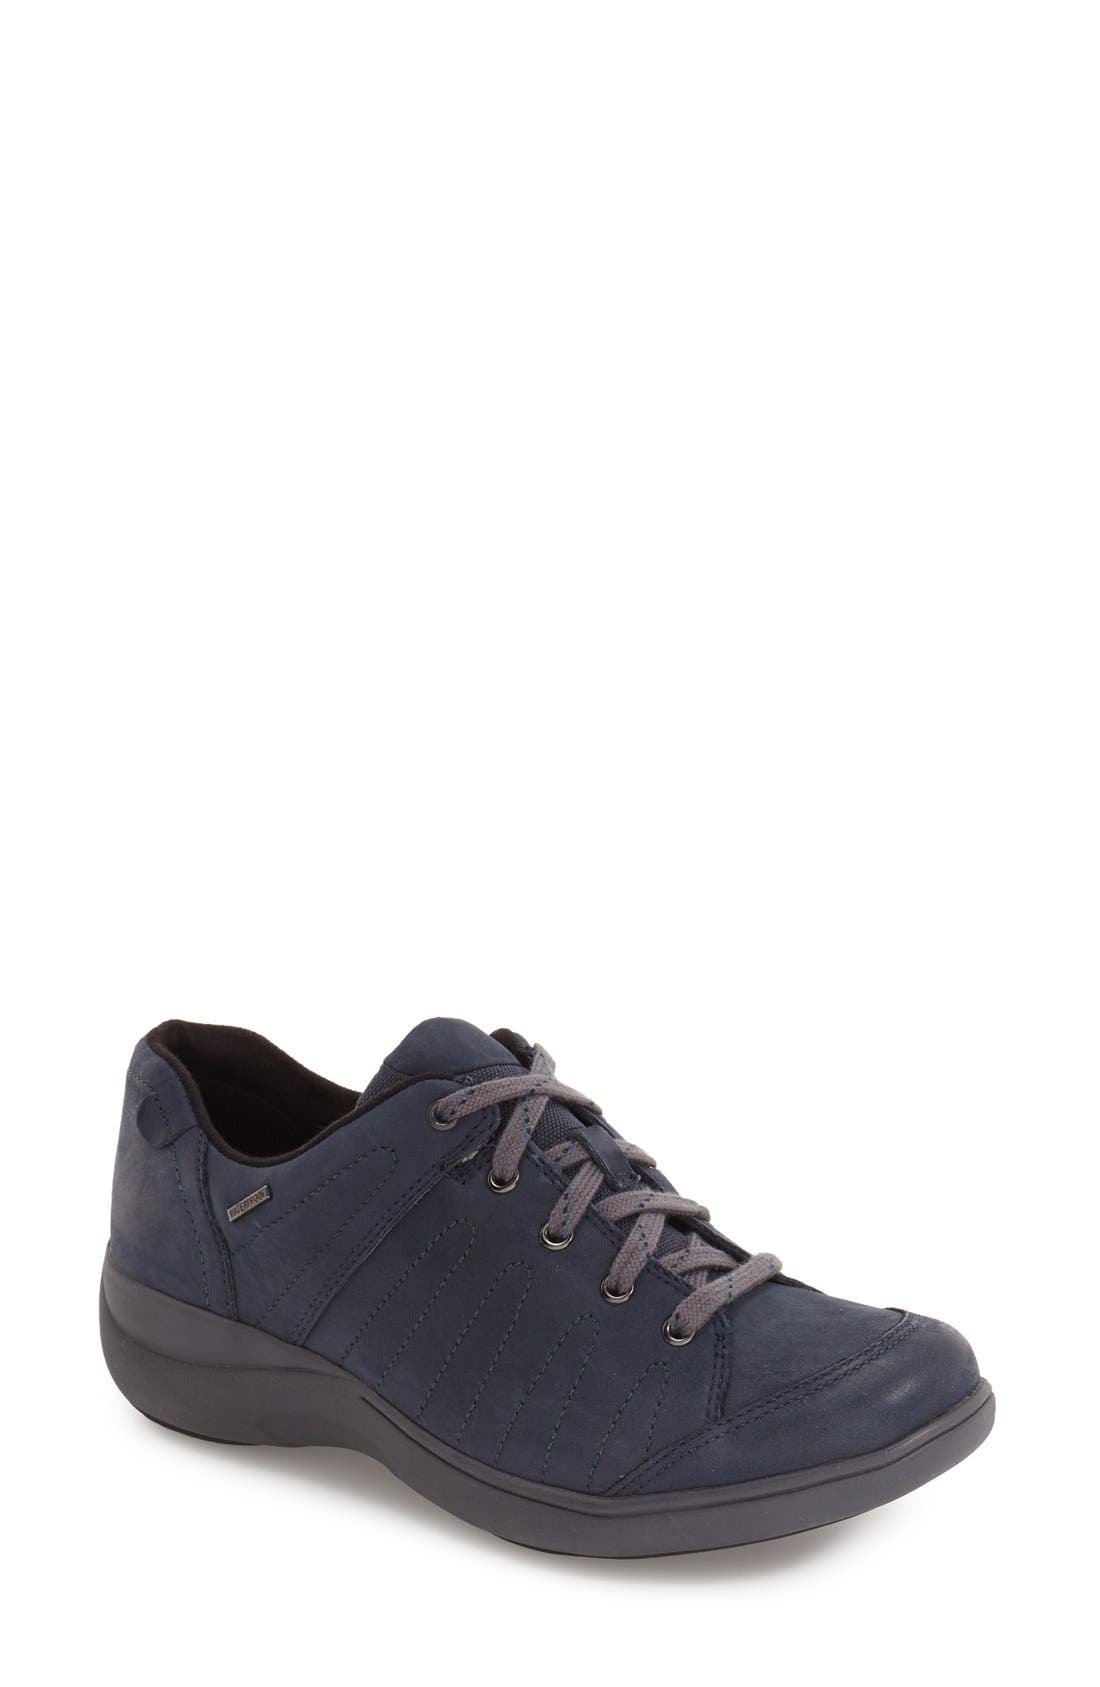 'REVsavor' Waterproof Sneaker,                         Main,                         color, Navy Leather